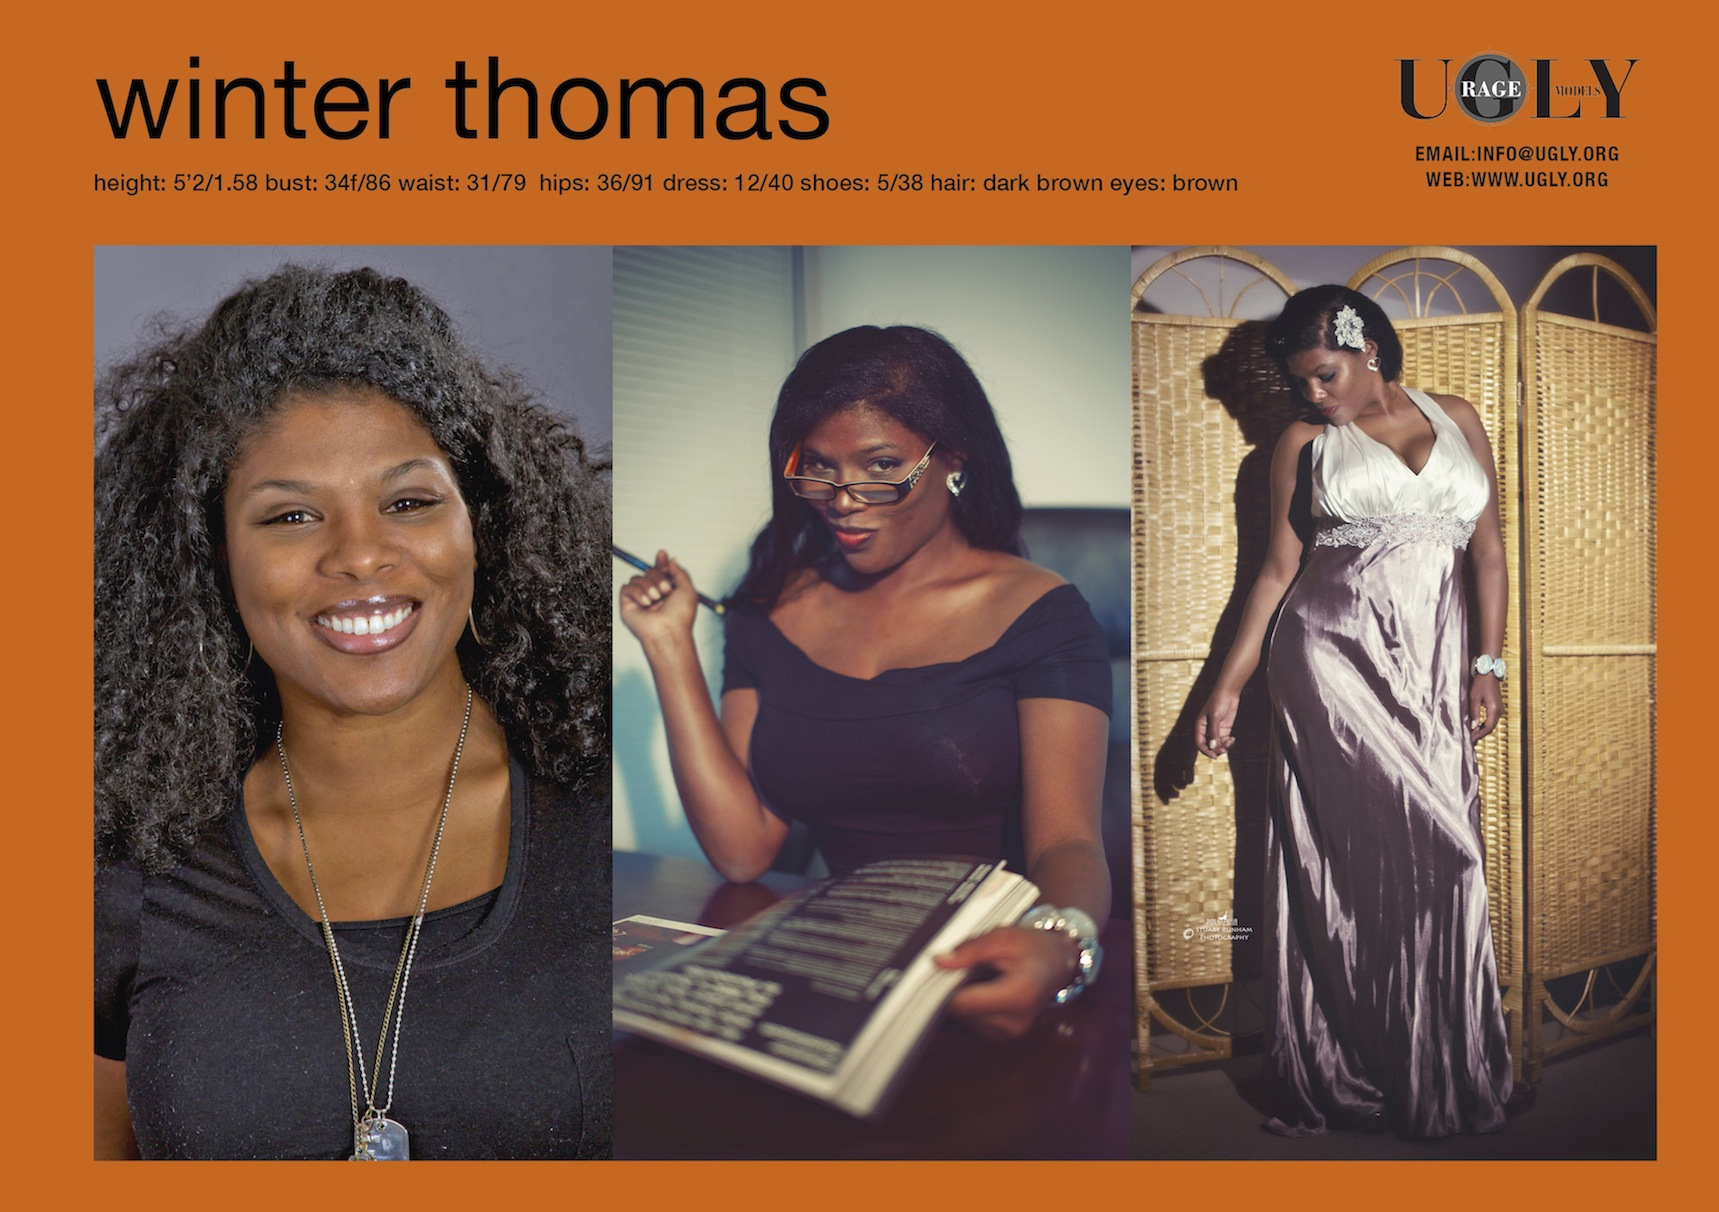 http://www.ugly.org/UGLY-MODELS/images/girls2/winter_thomas_2015_card.jpg